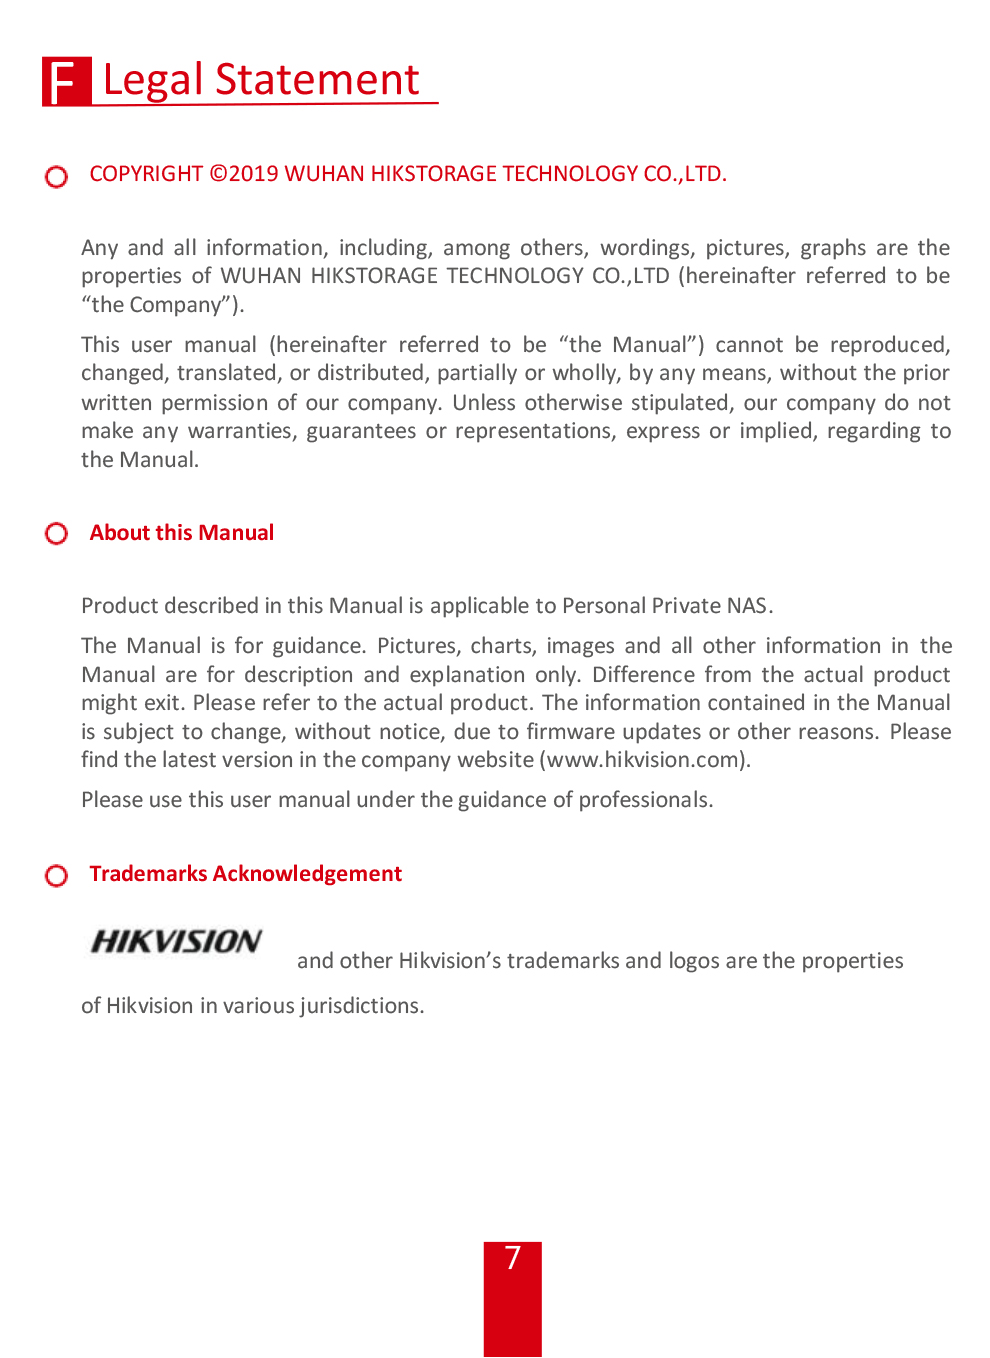 User-Manual-of-Hikvision-Personal-Private-NAS-H90-20190717-8